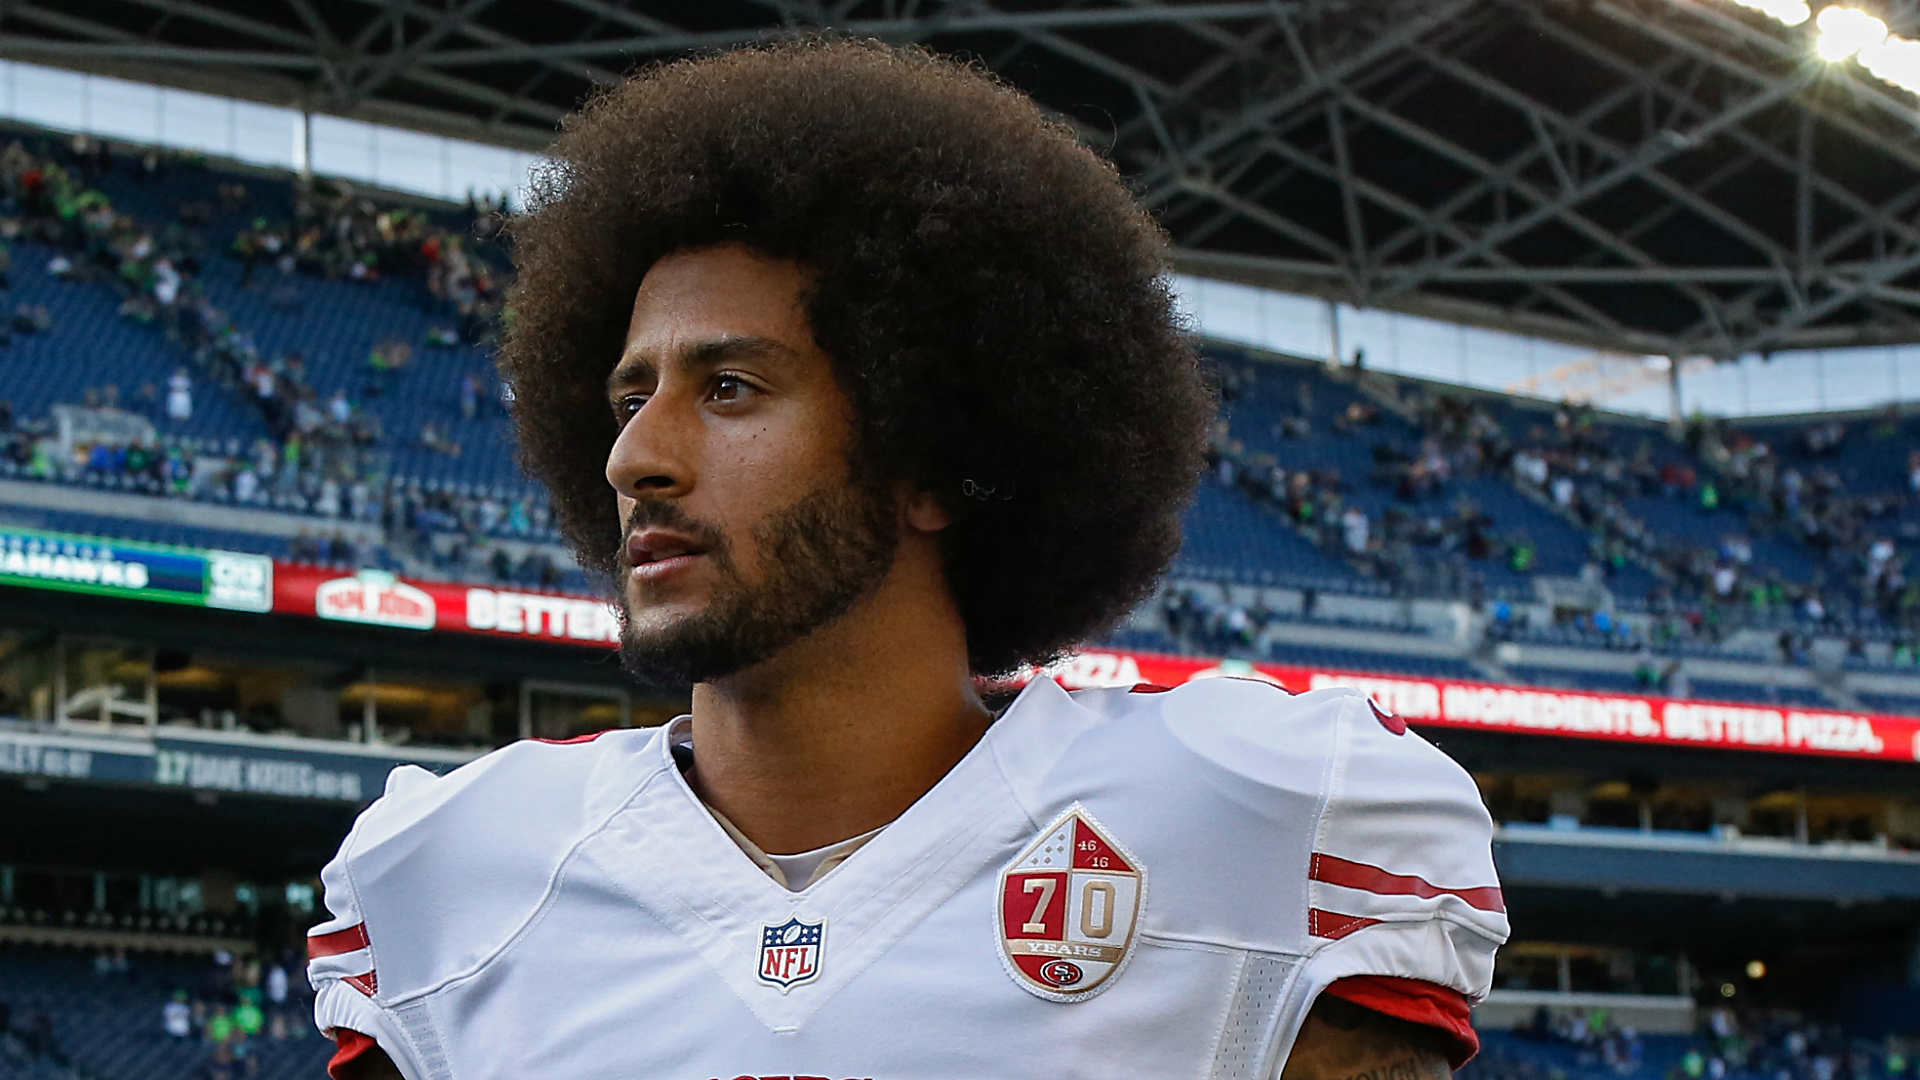 Colin Kaepernick reportedly says he wants to play football